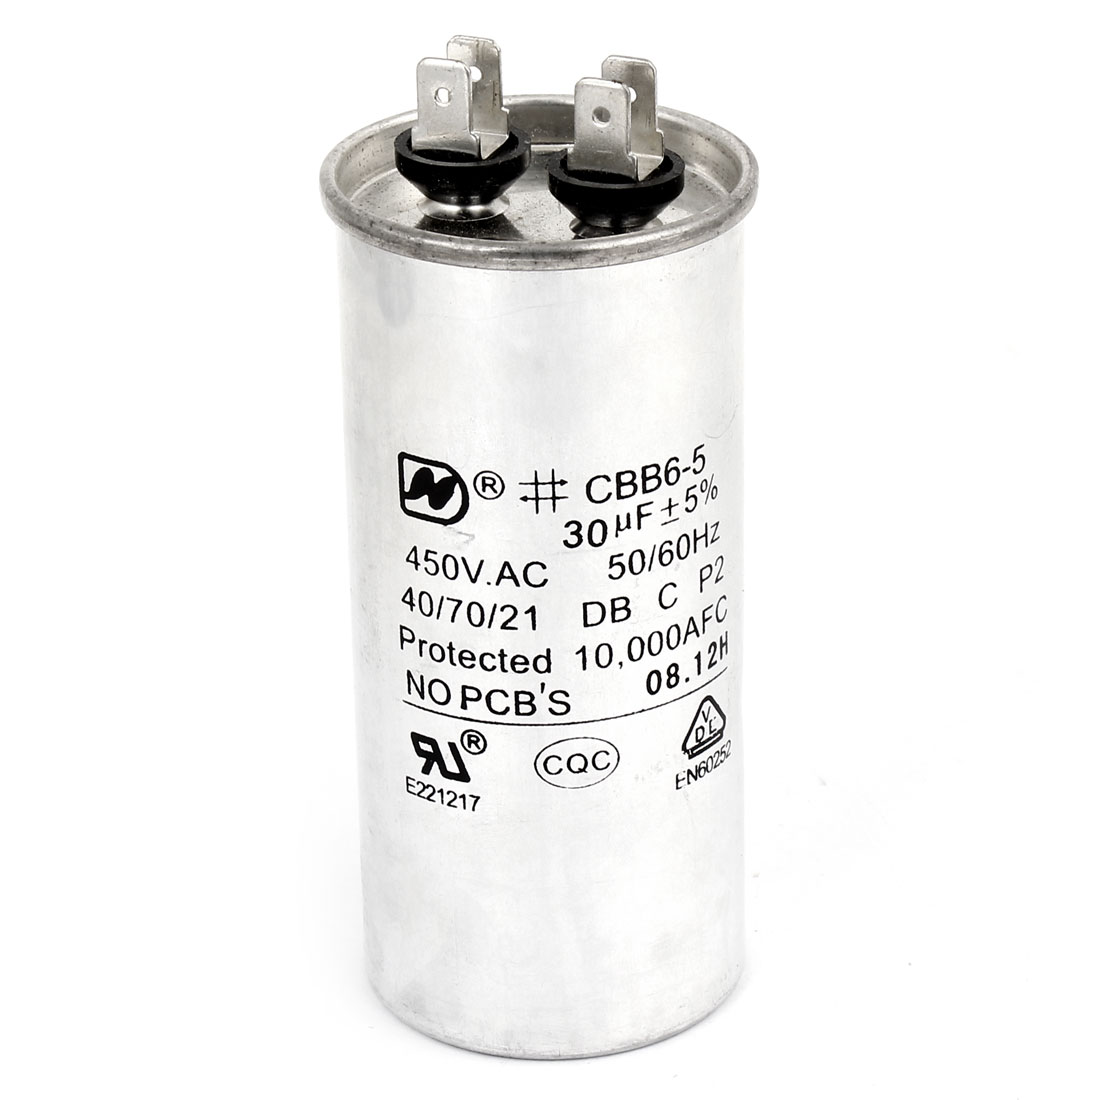 CBB65 AC 450V 30uF 50/60Hz 4 Terminals Cylinder Shaped Air Conditioner Motor Run Capacitor Silver Tone